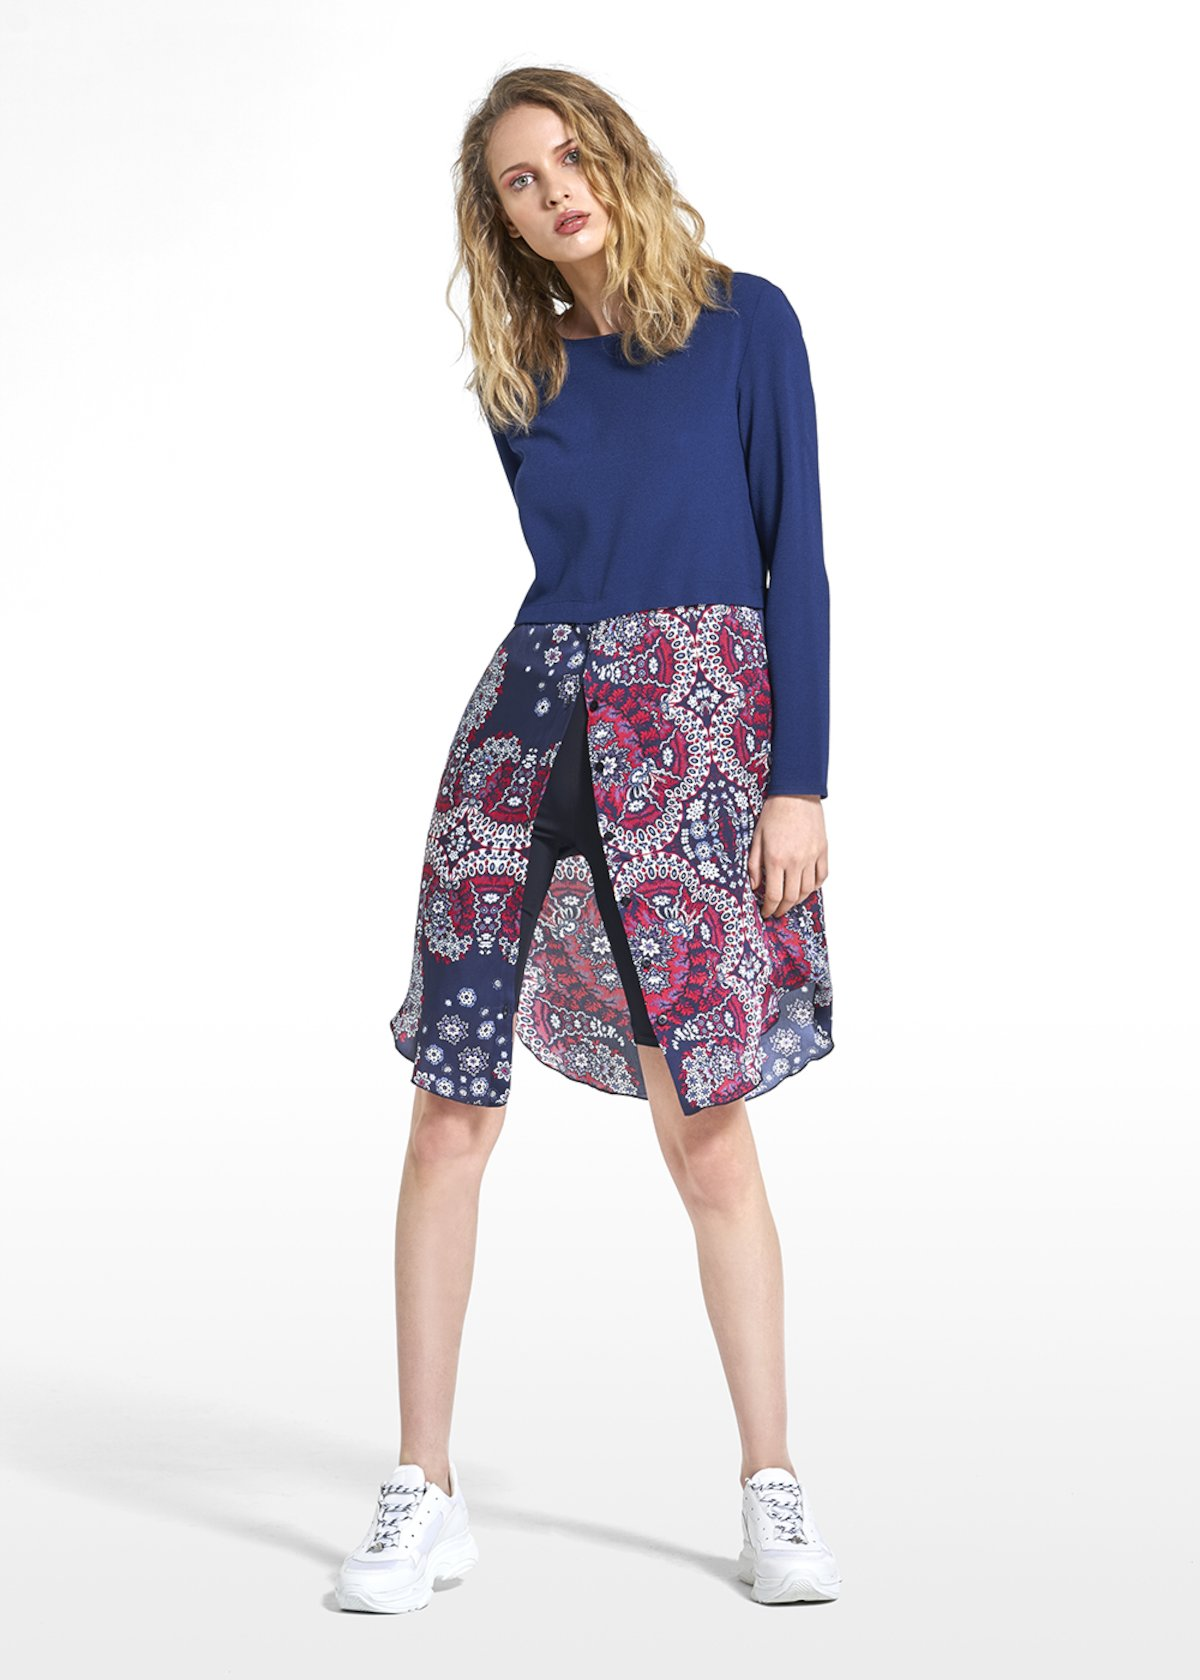 Argo dress with pattern on the skirt - Blue / Tulipano Fantasia - Woman - Category image